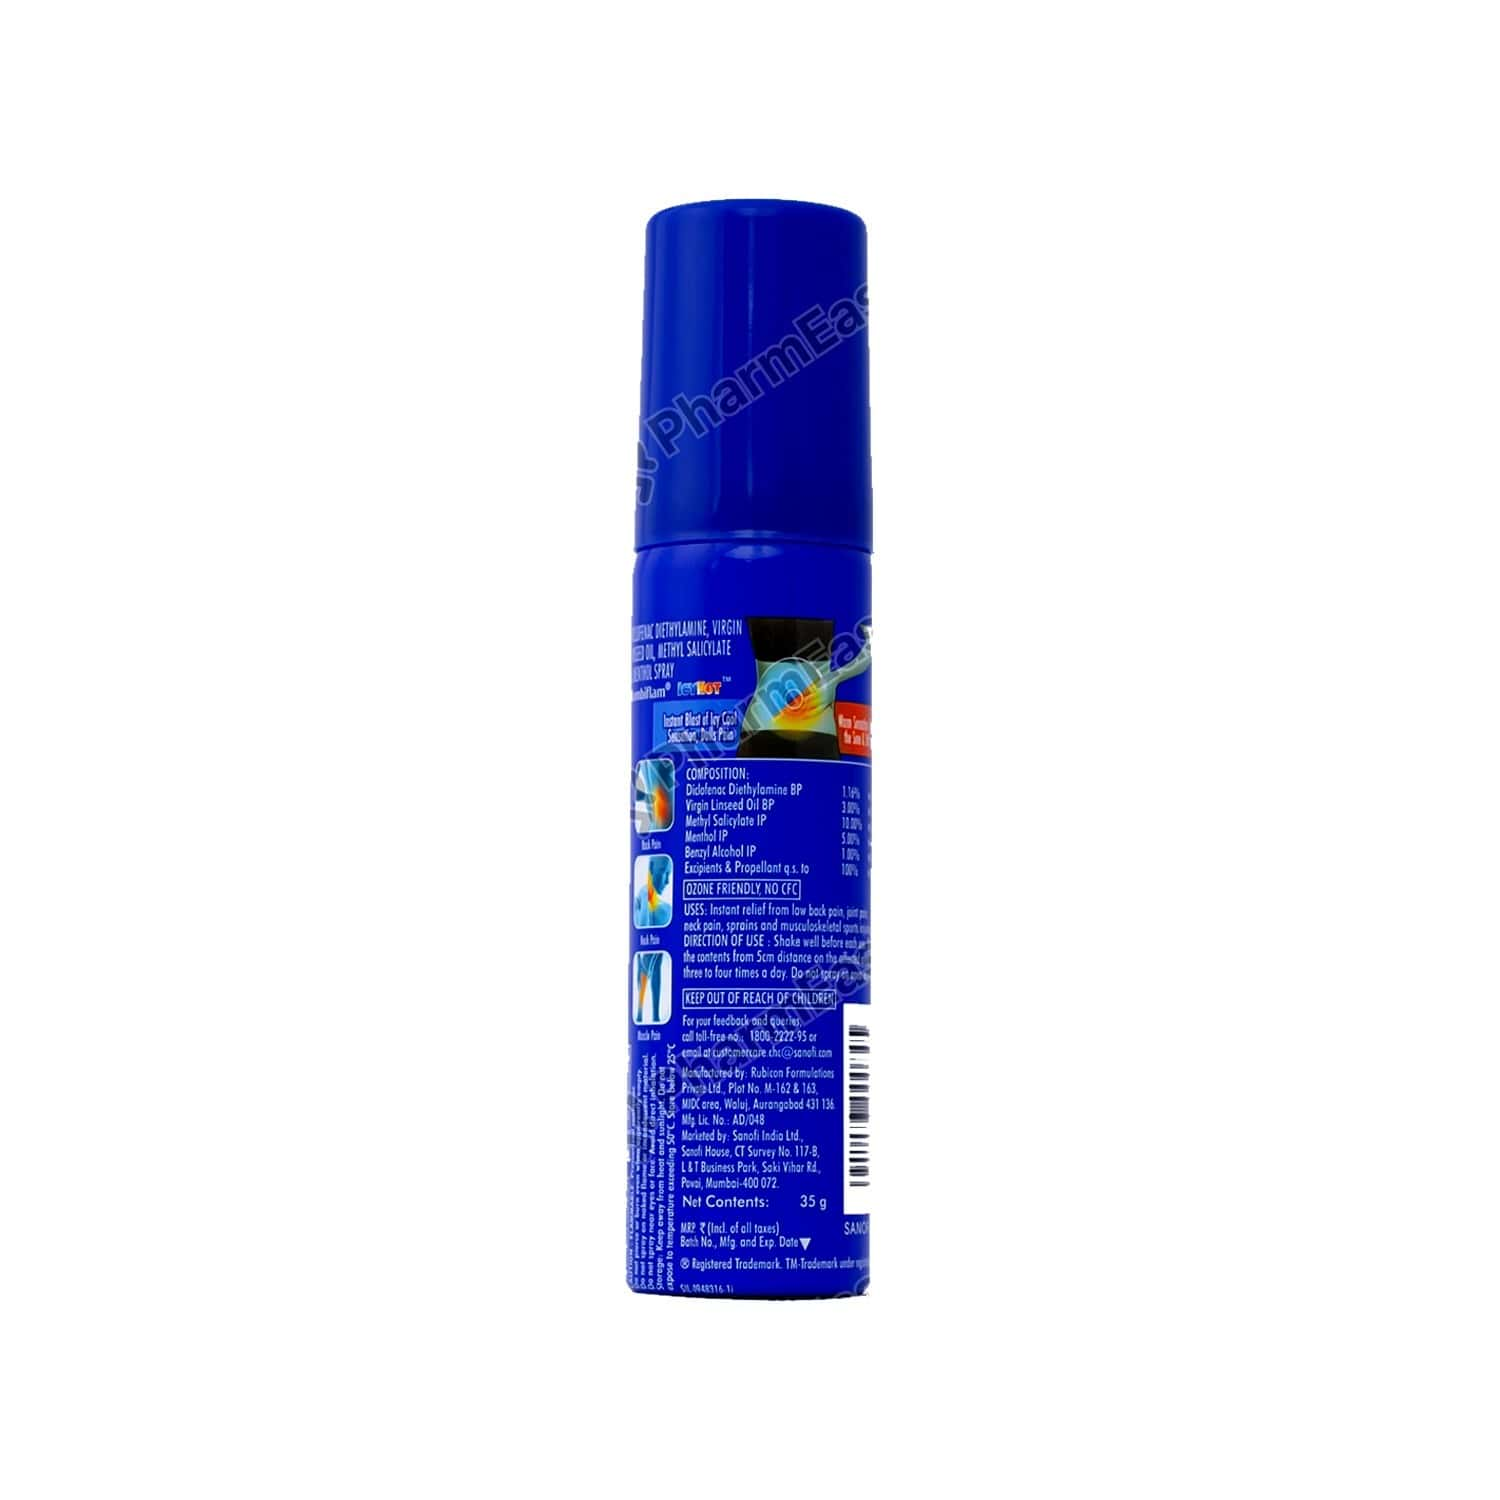 Combiflam Icyhot Fast Pain Relief Spray - 35 Gms